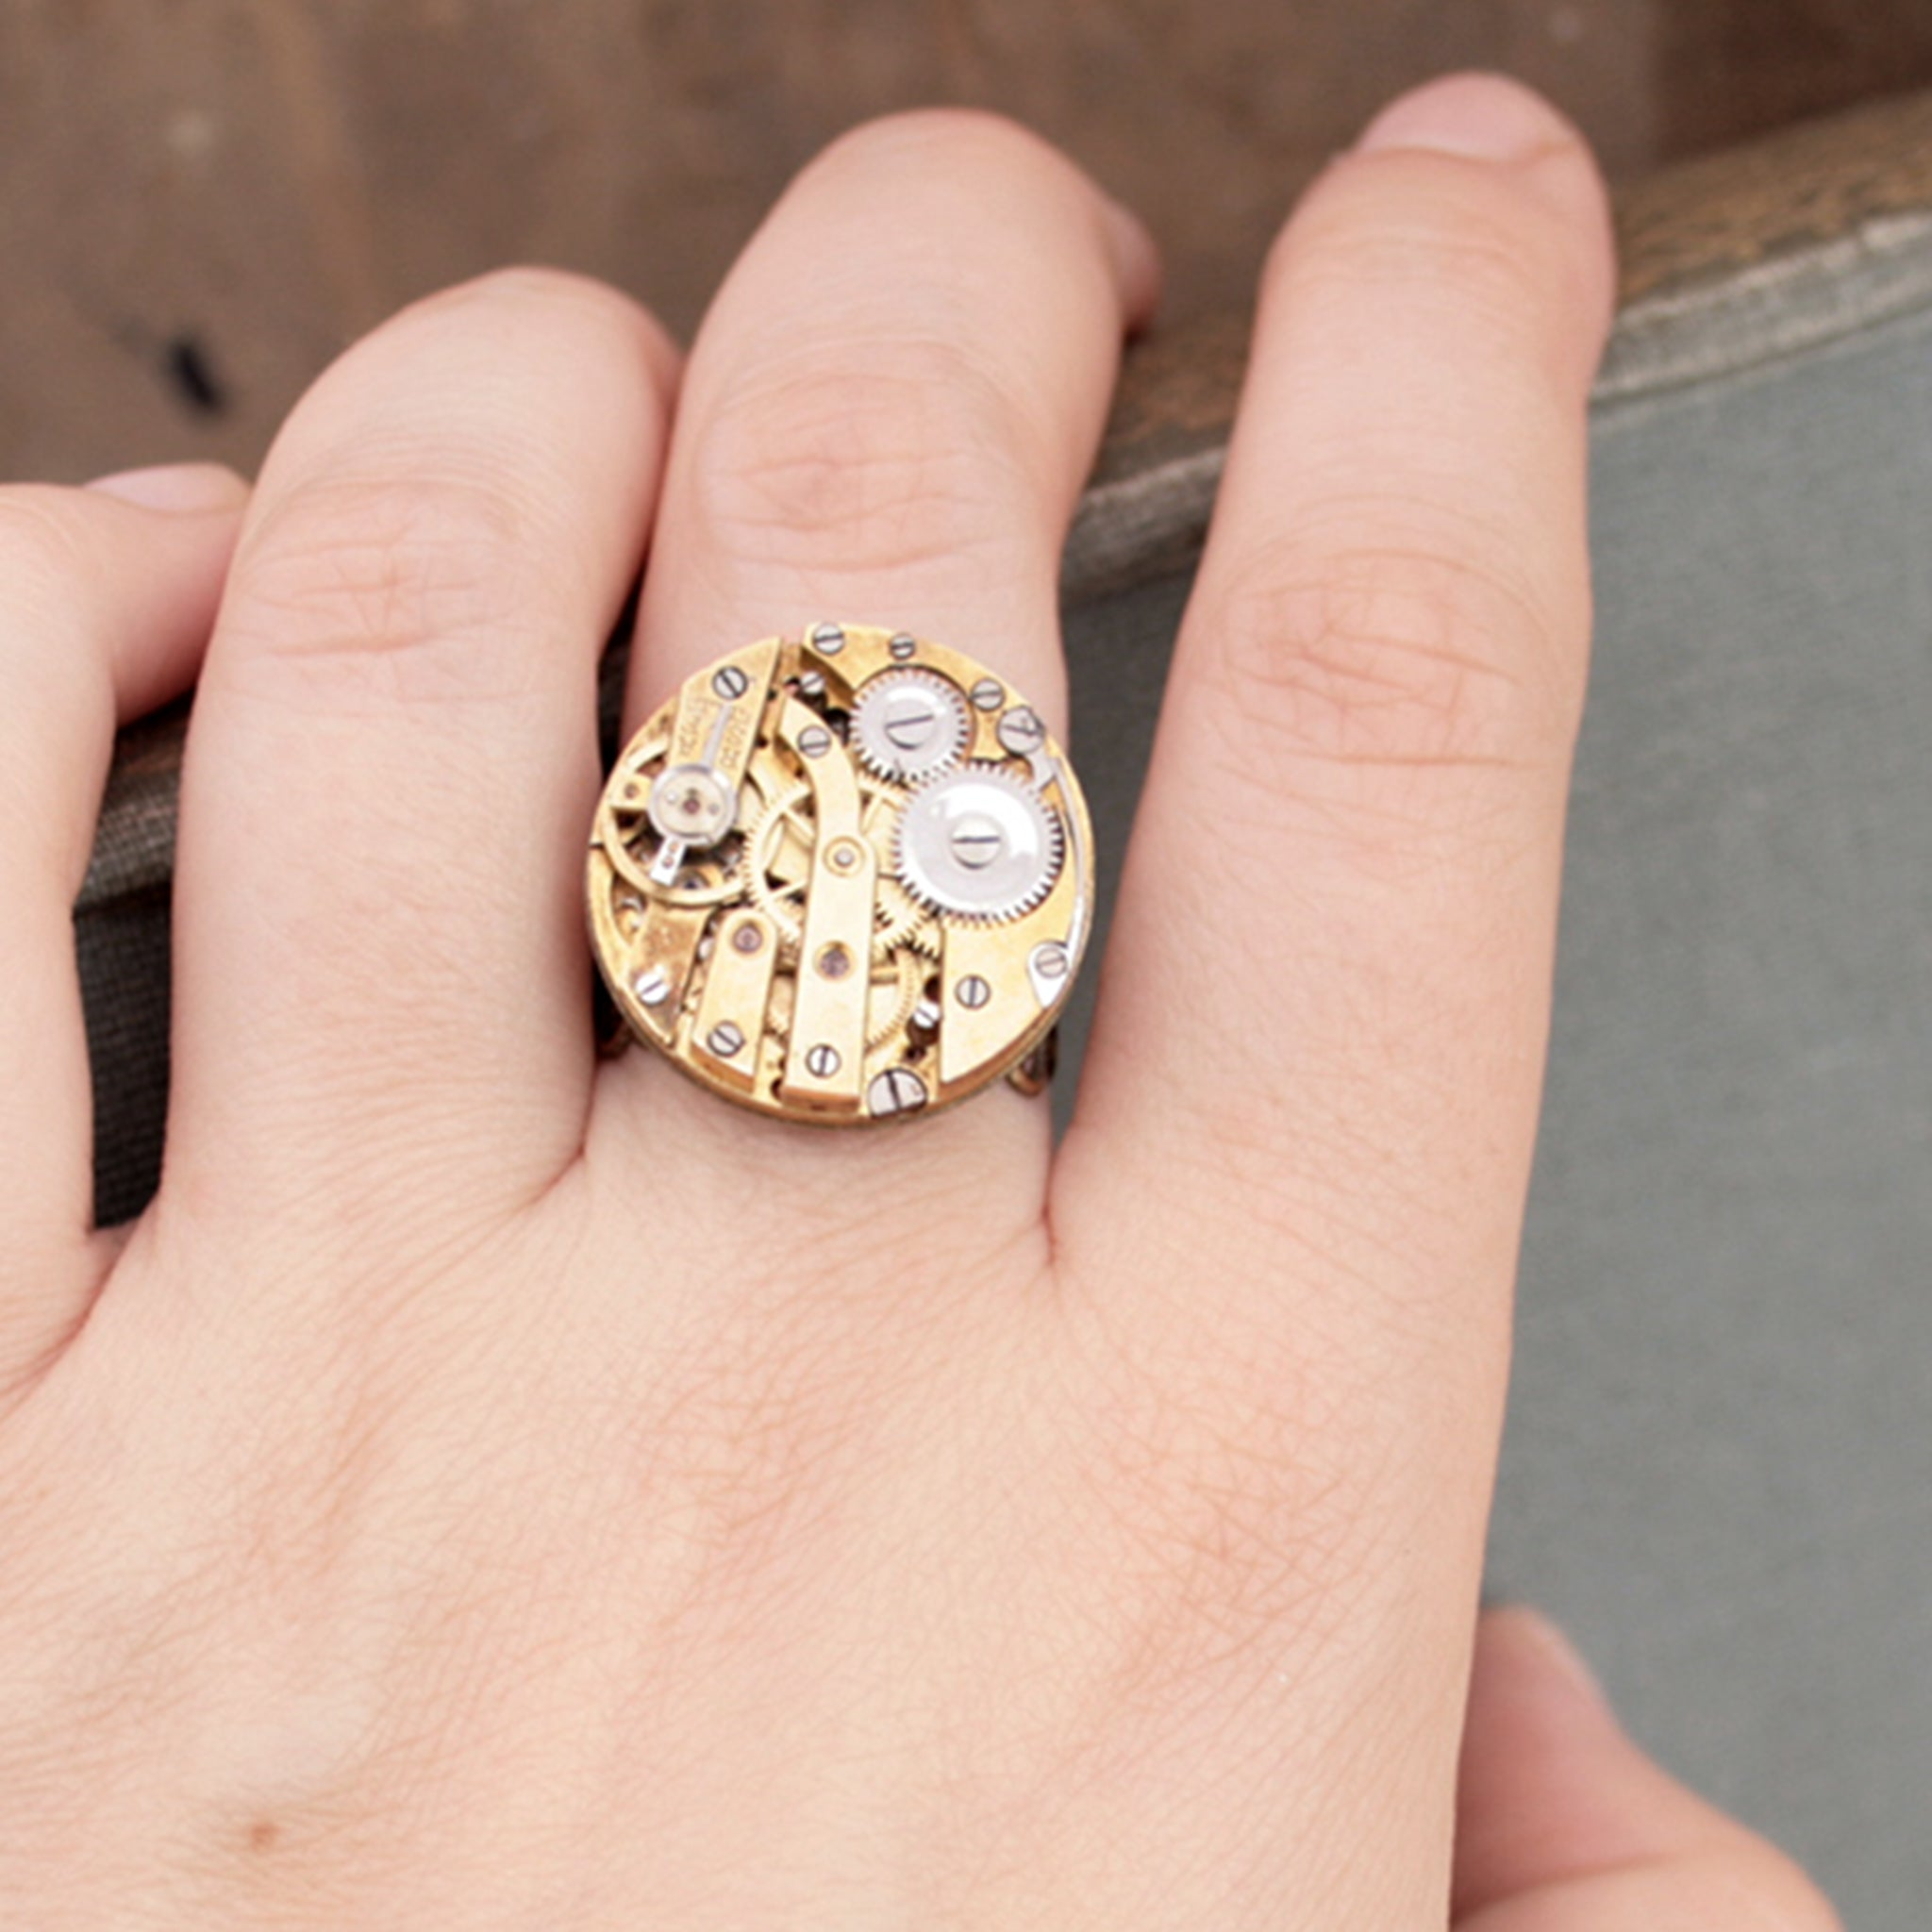 Gothic Ring in Gold tone with filigree bronze band on hand